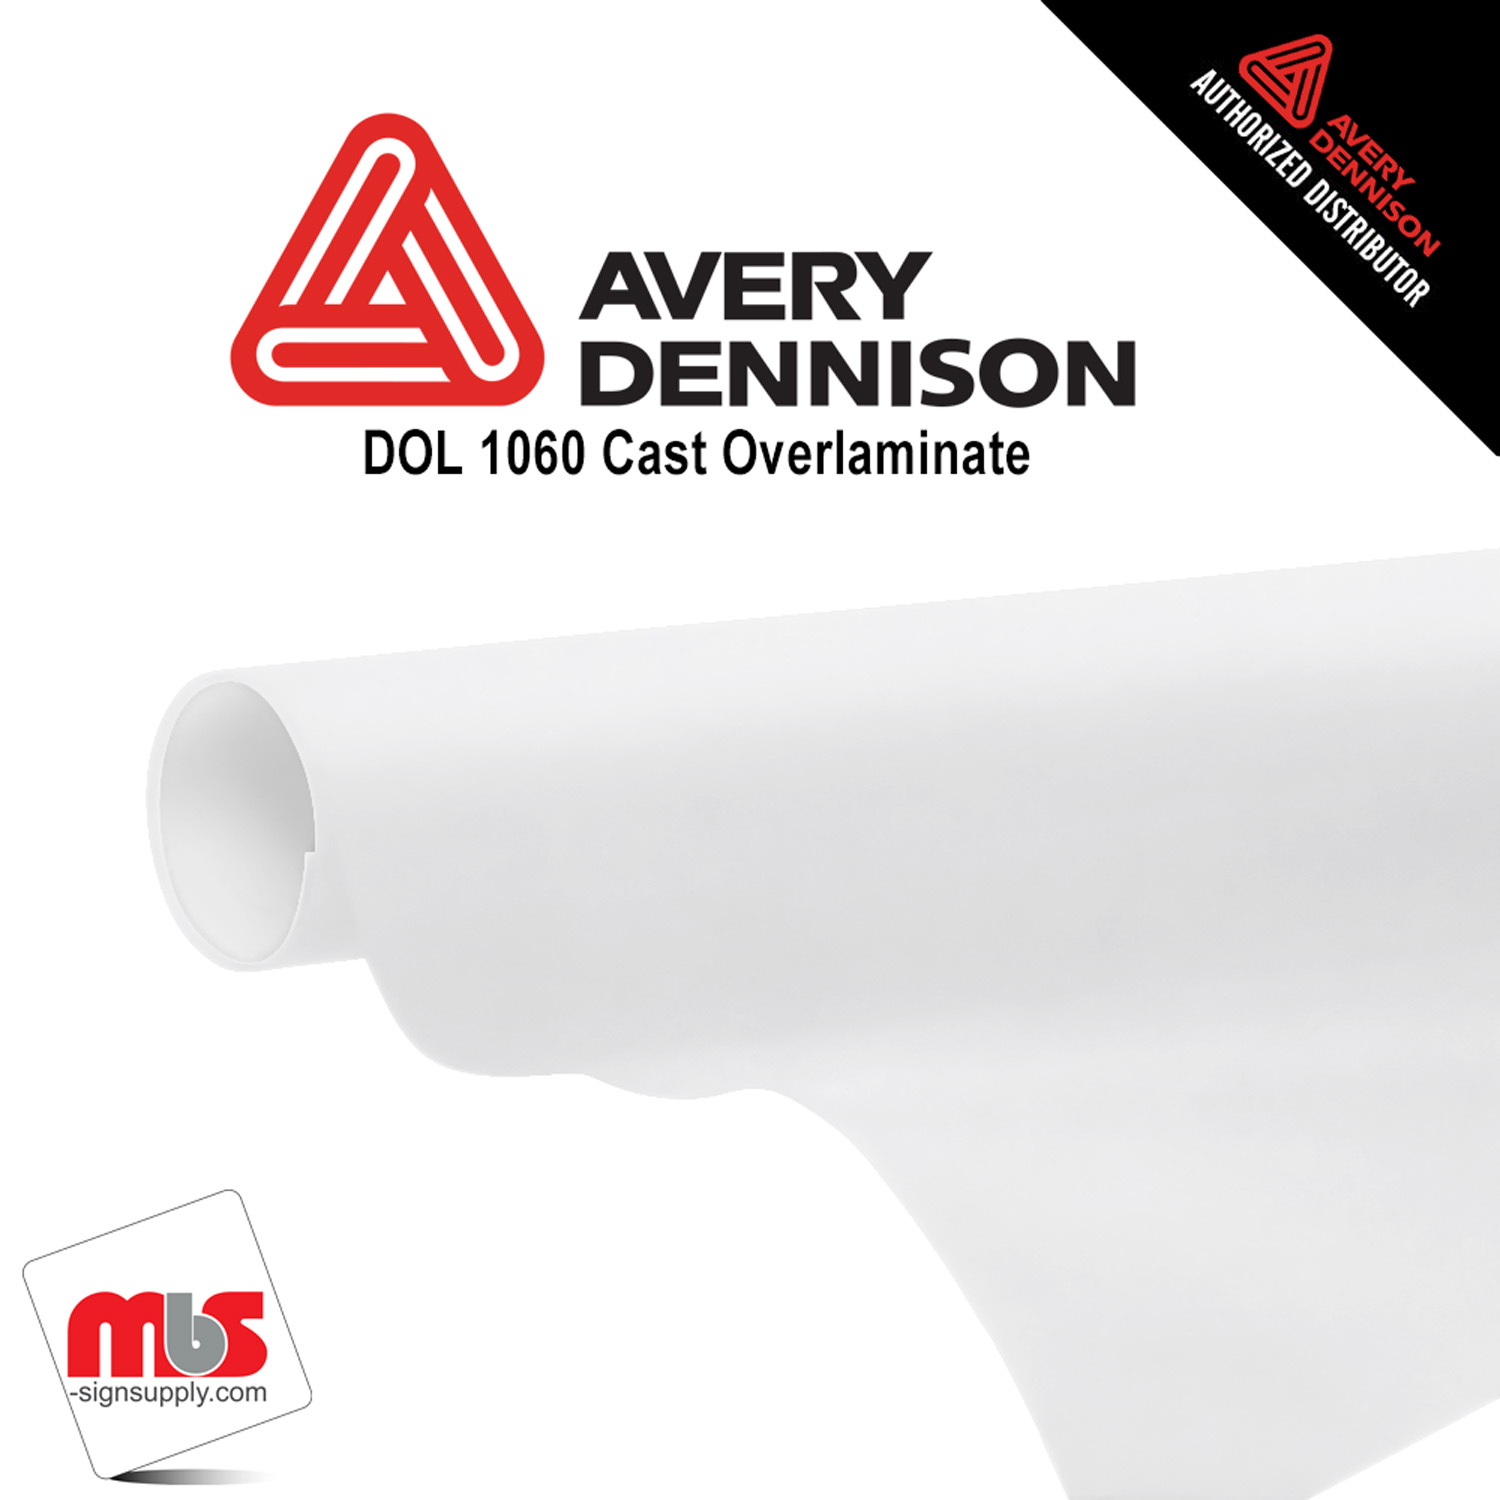 30'' x 50 yards Avery DOL1060Z High Gloss Clear 5 year Long Term Unpunched 2.1 Mil Cast Overlaminate (Color Code 103)